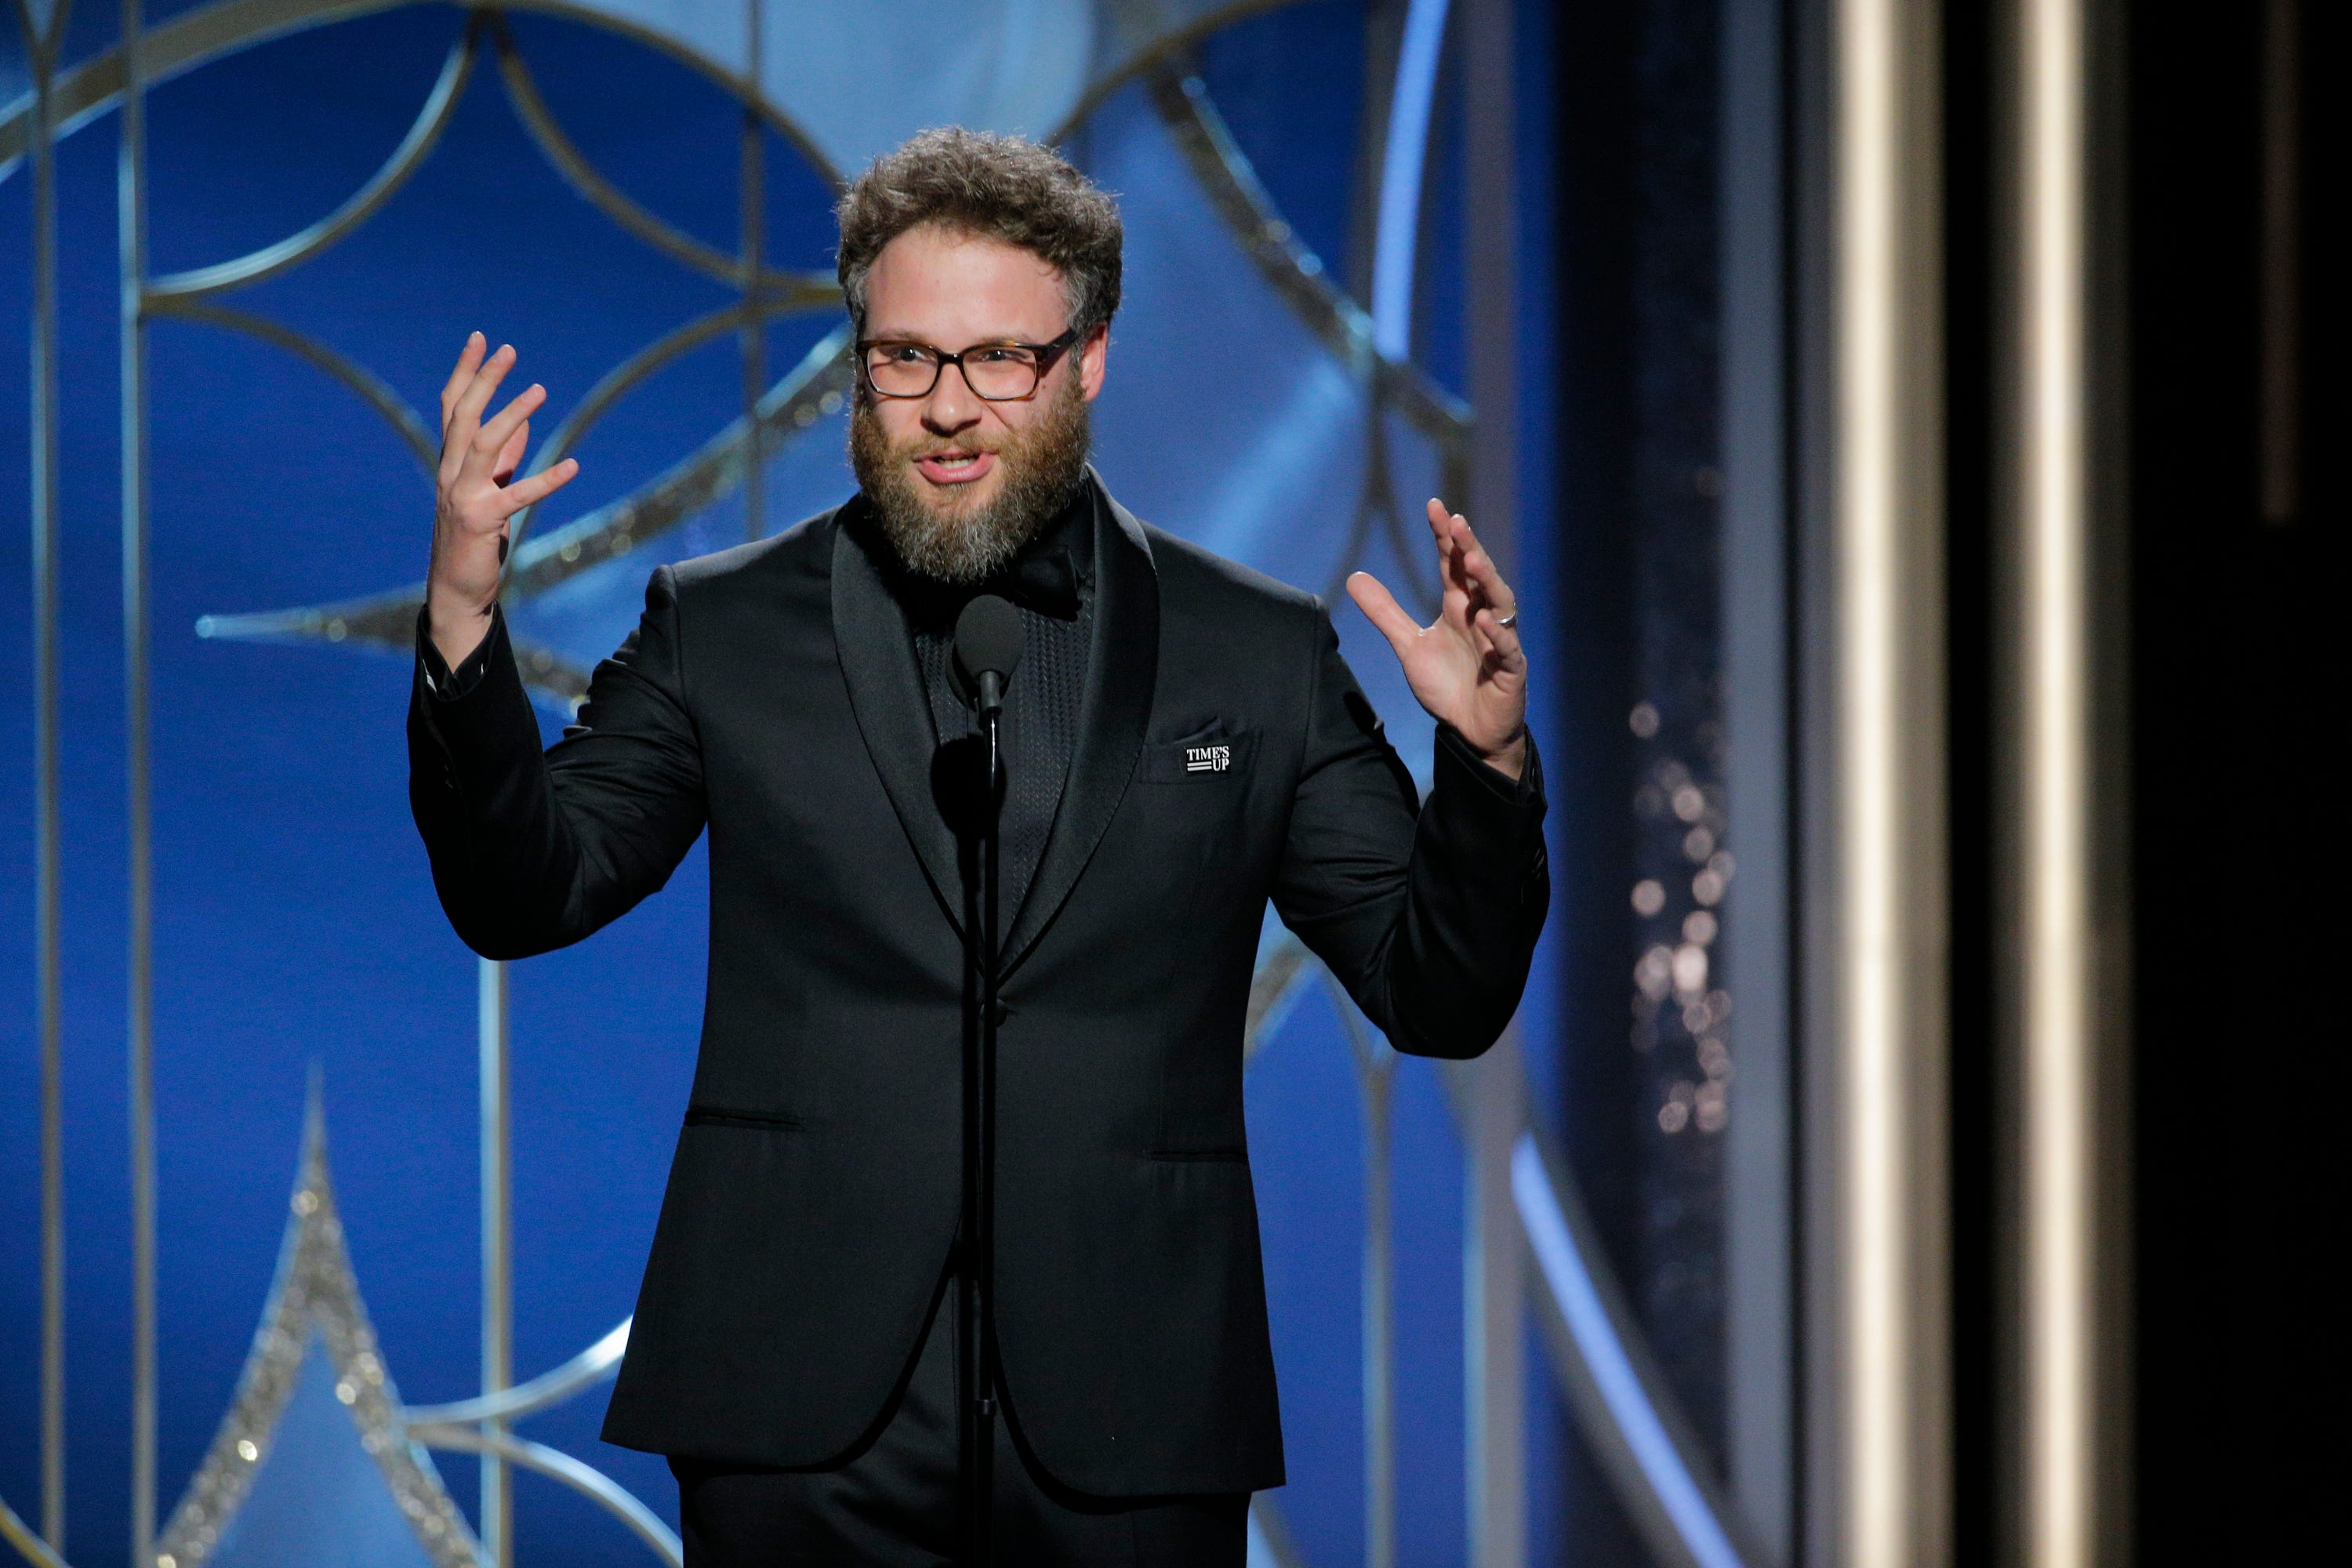 'No way, man!': Seth Rogen recounts the awkward time he turned down a photo with Paul Ryan